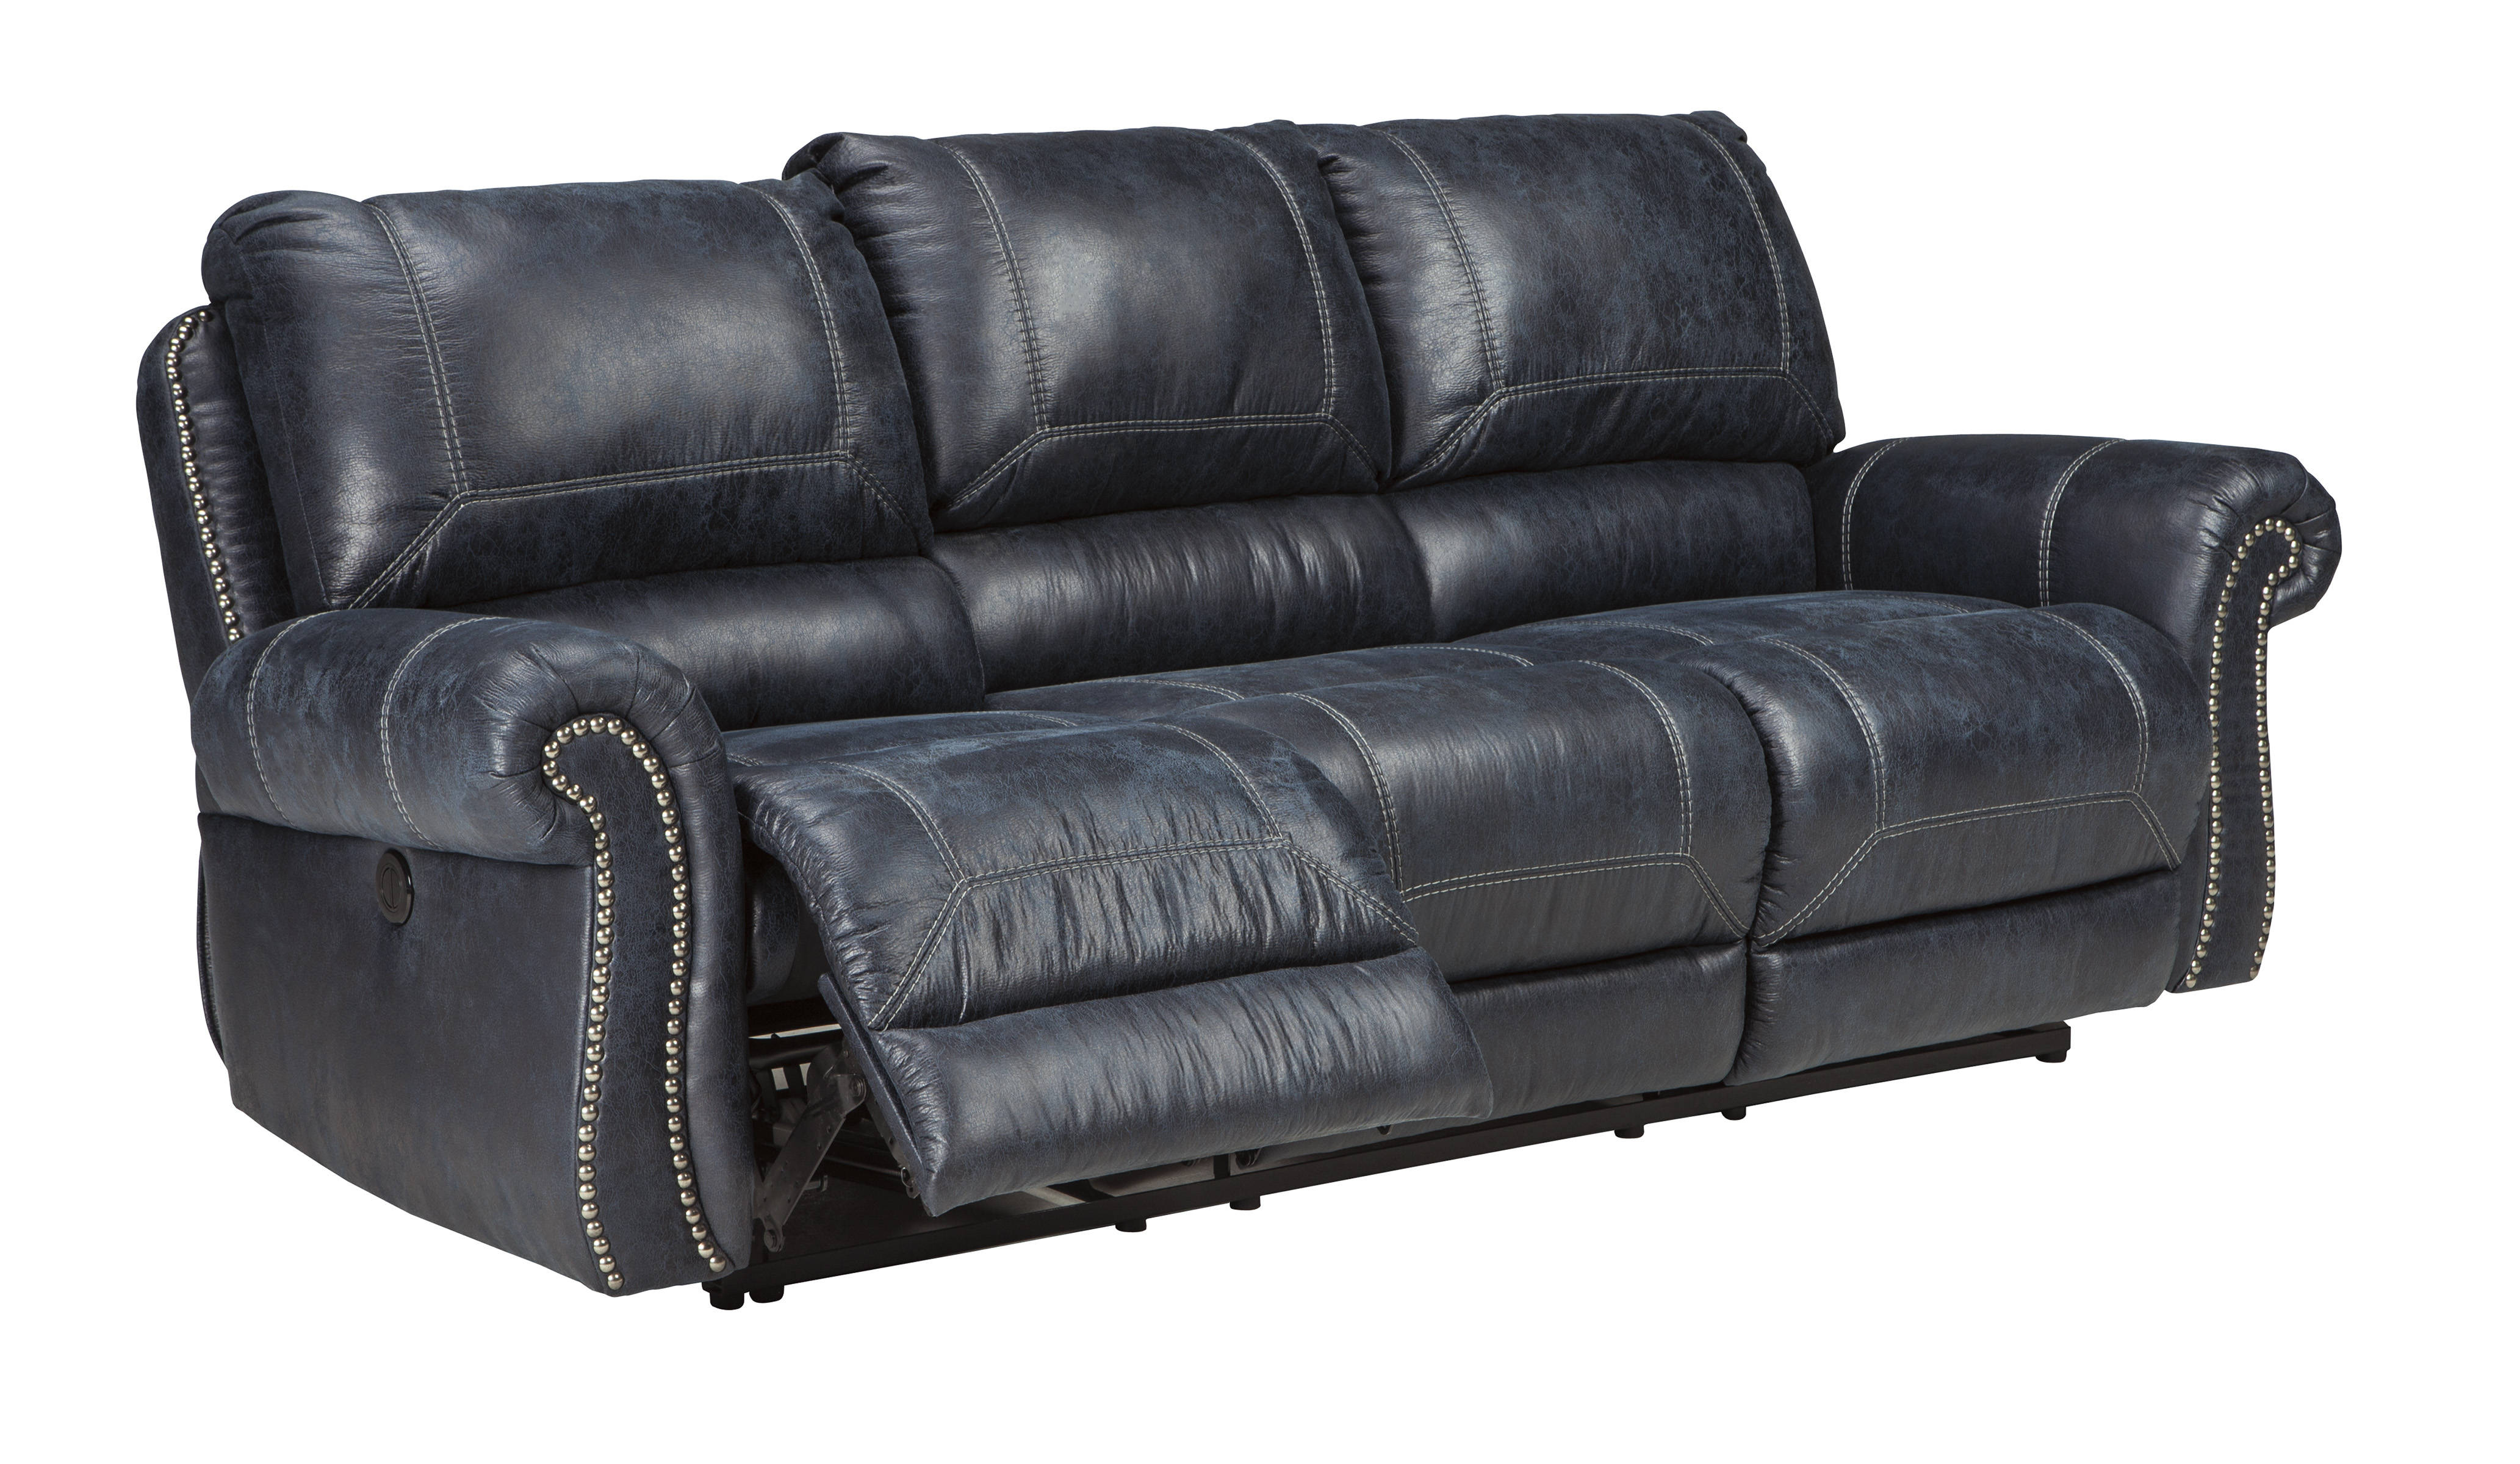 Ashley Furniture Milhaven Navy Reclining Power Sofa The